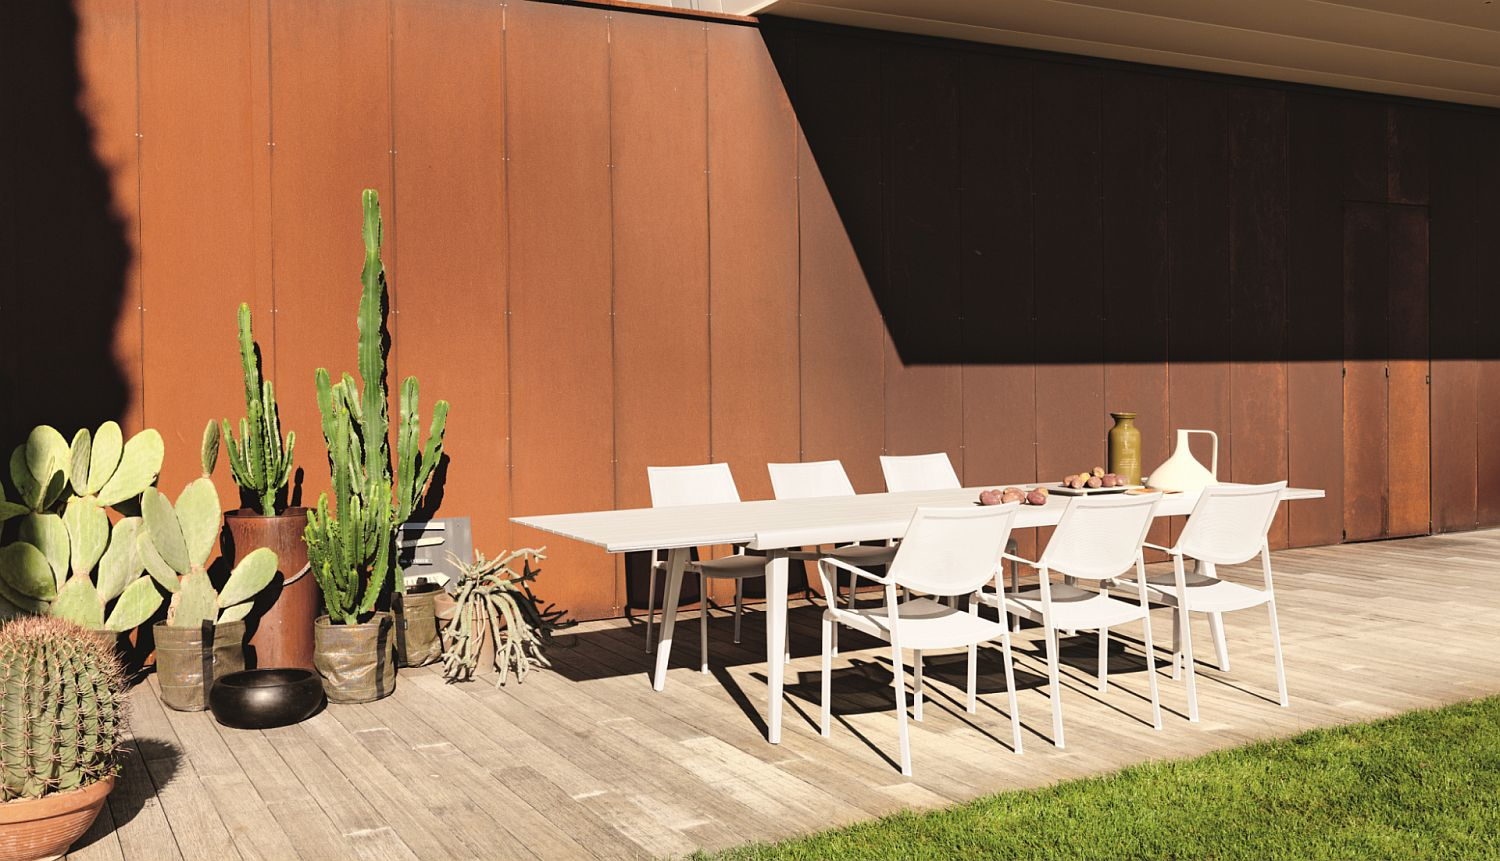 Outdoor dining table and chairs from the Samba Rio Collection